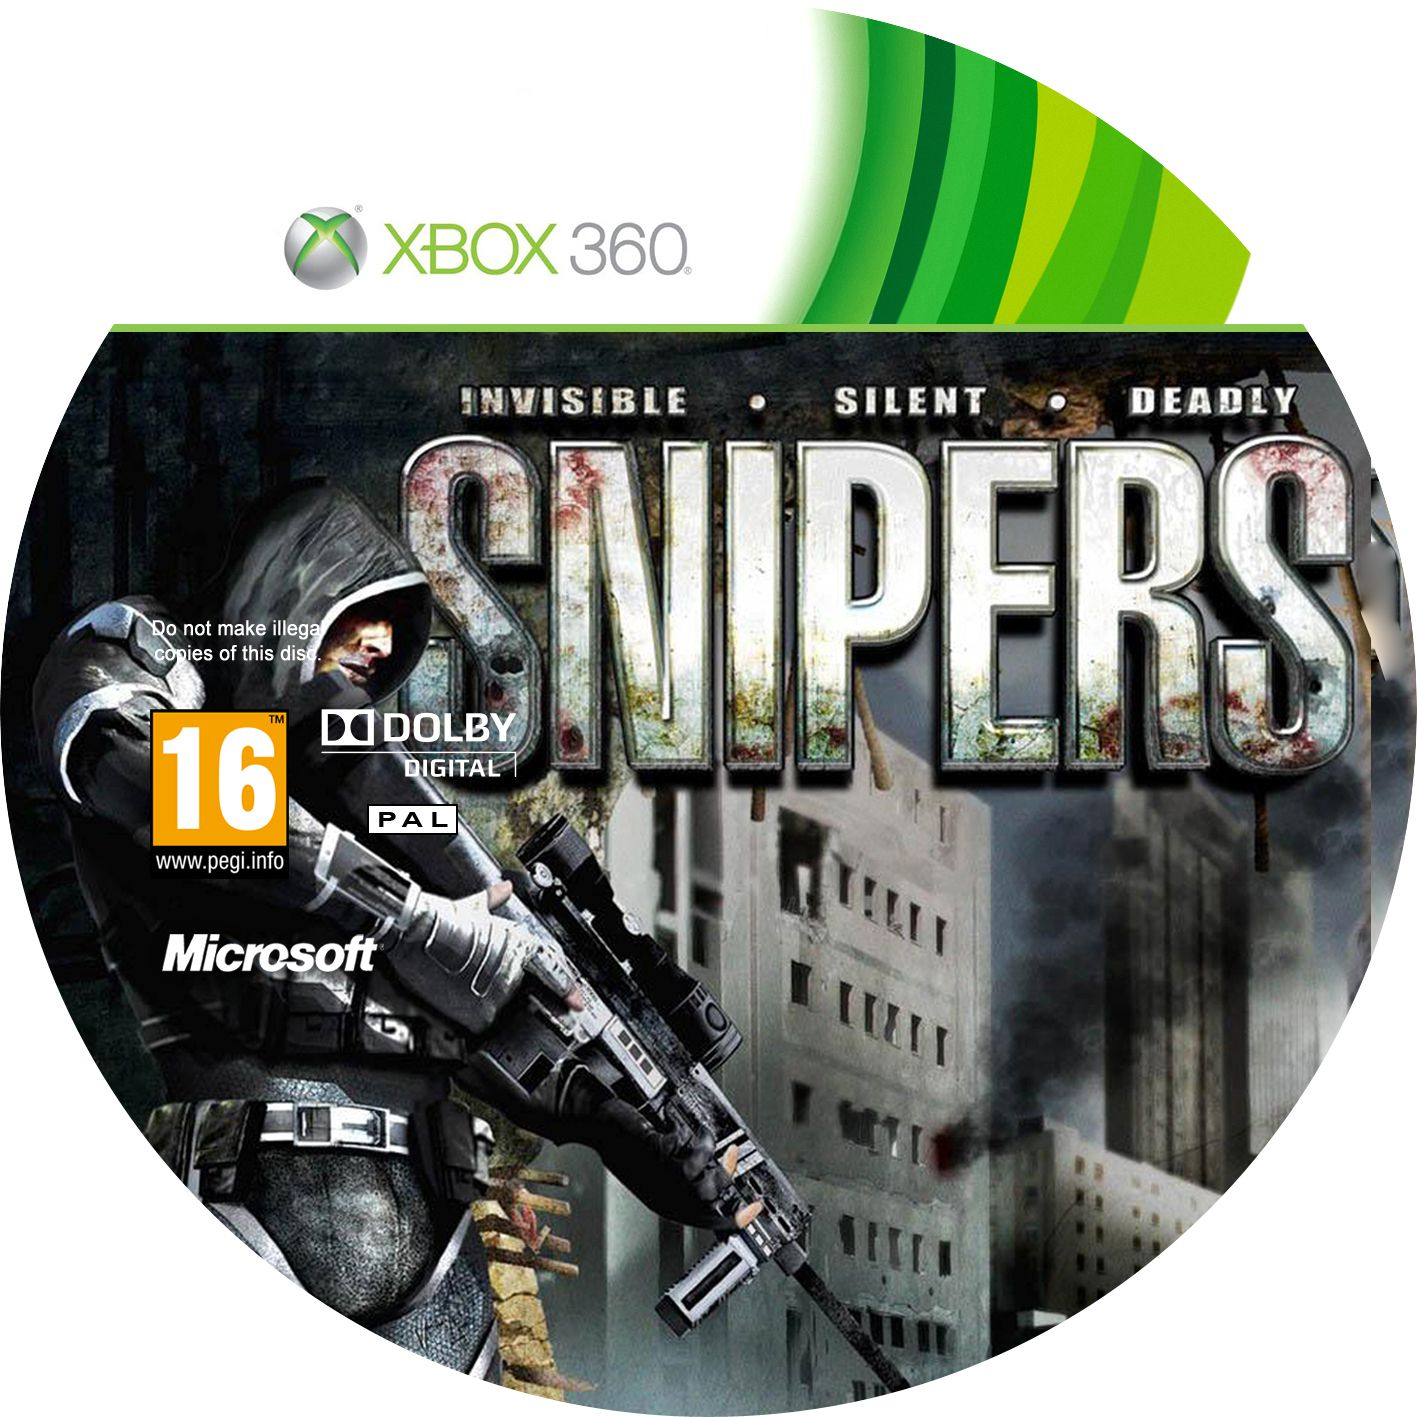 Label Snipers Xbox 360